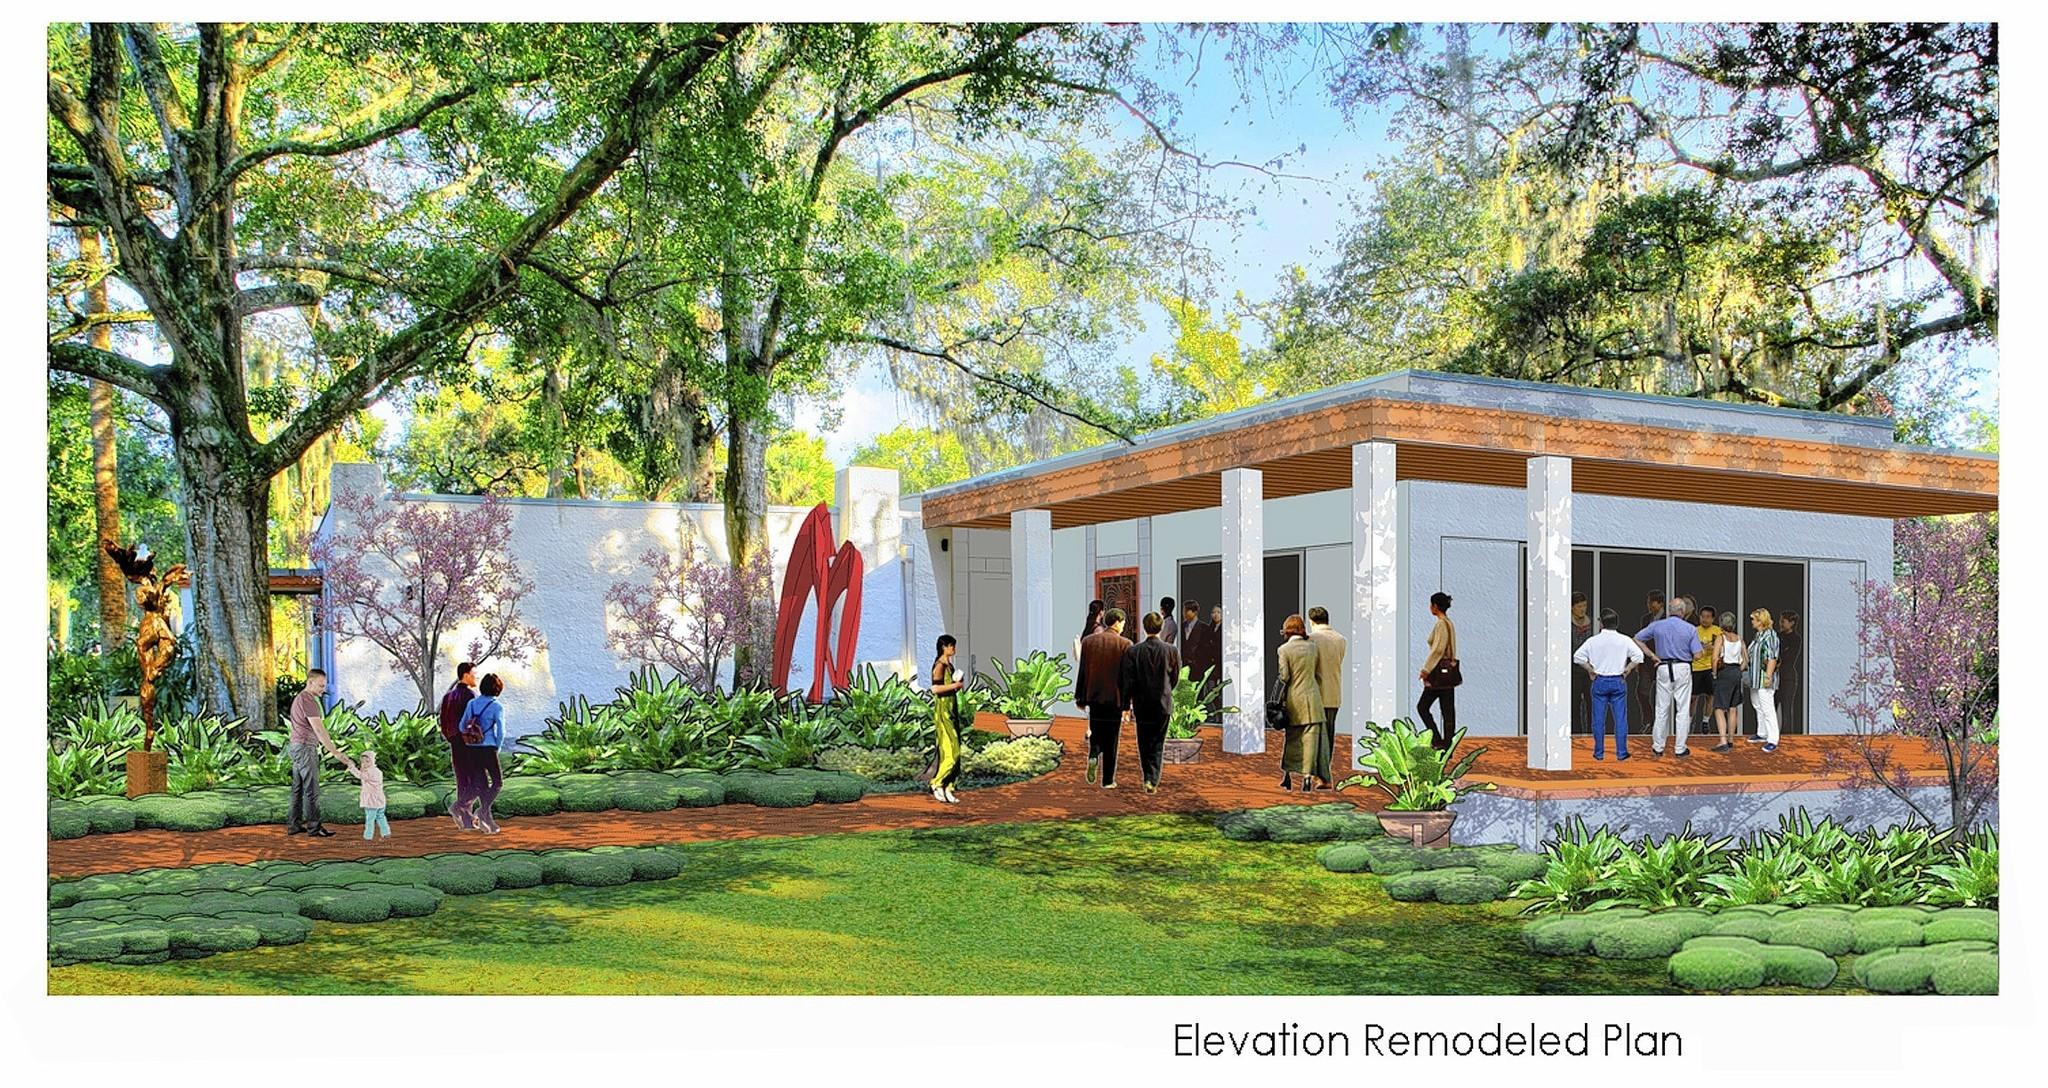 A rendering of the renovated Germaine Marvel Building at the Art & History Museums -- Maitland.